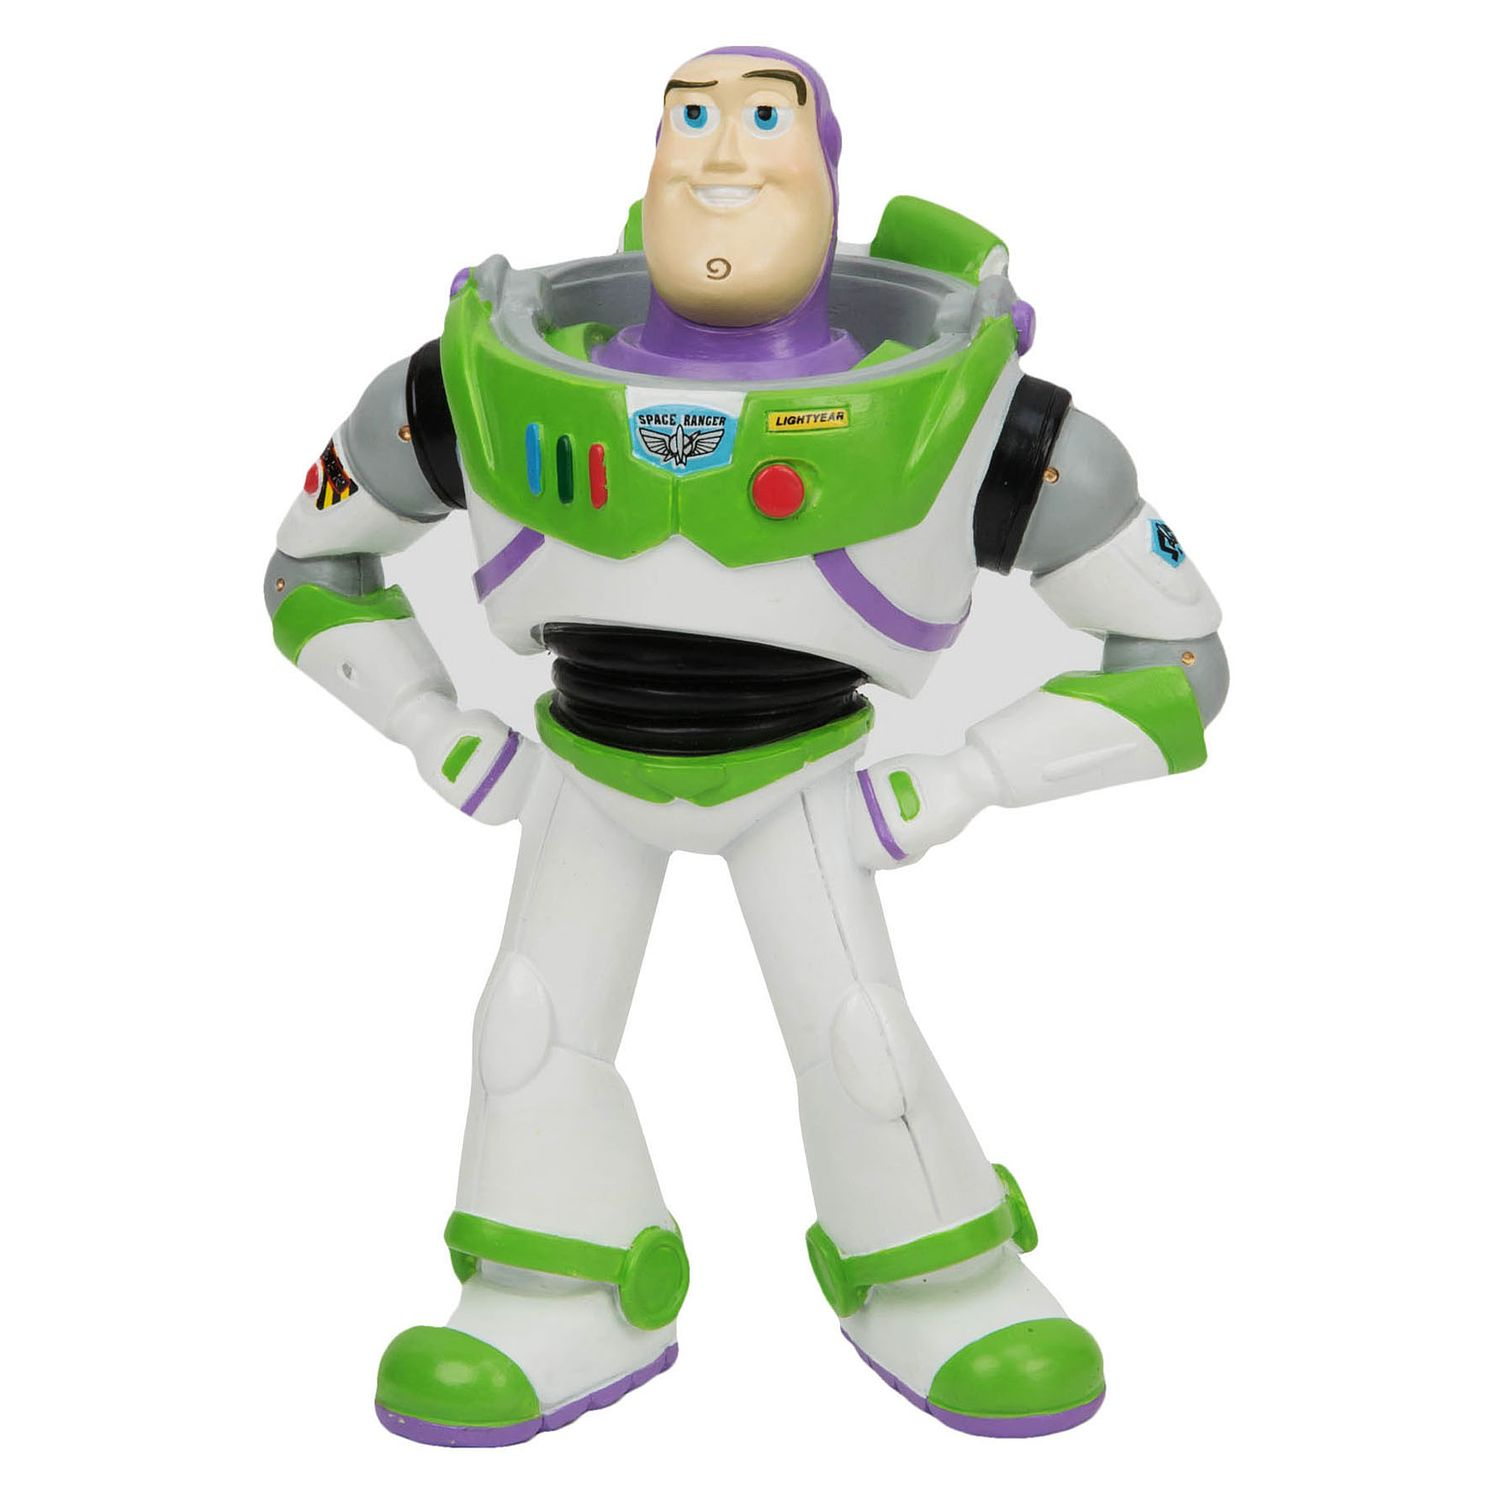 Toy Story Buzz Lightyear Figurine - Product number 3398358